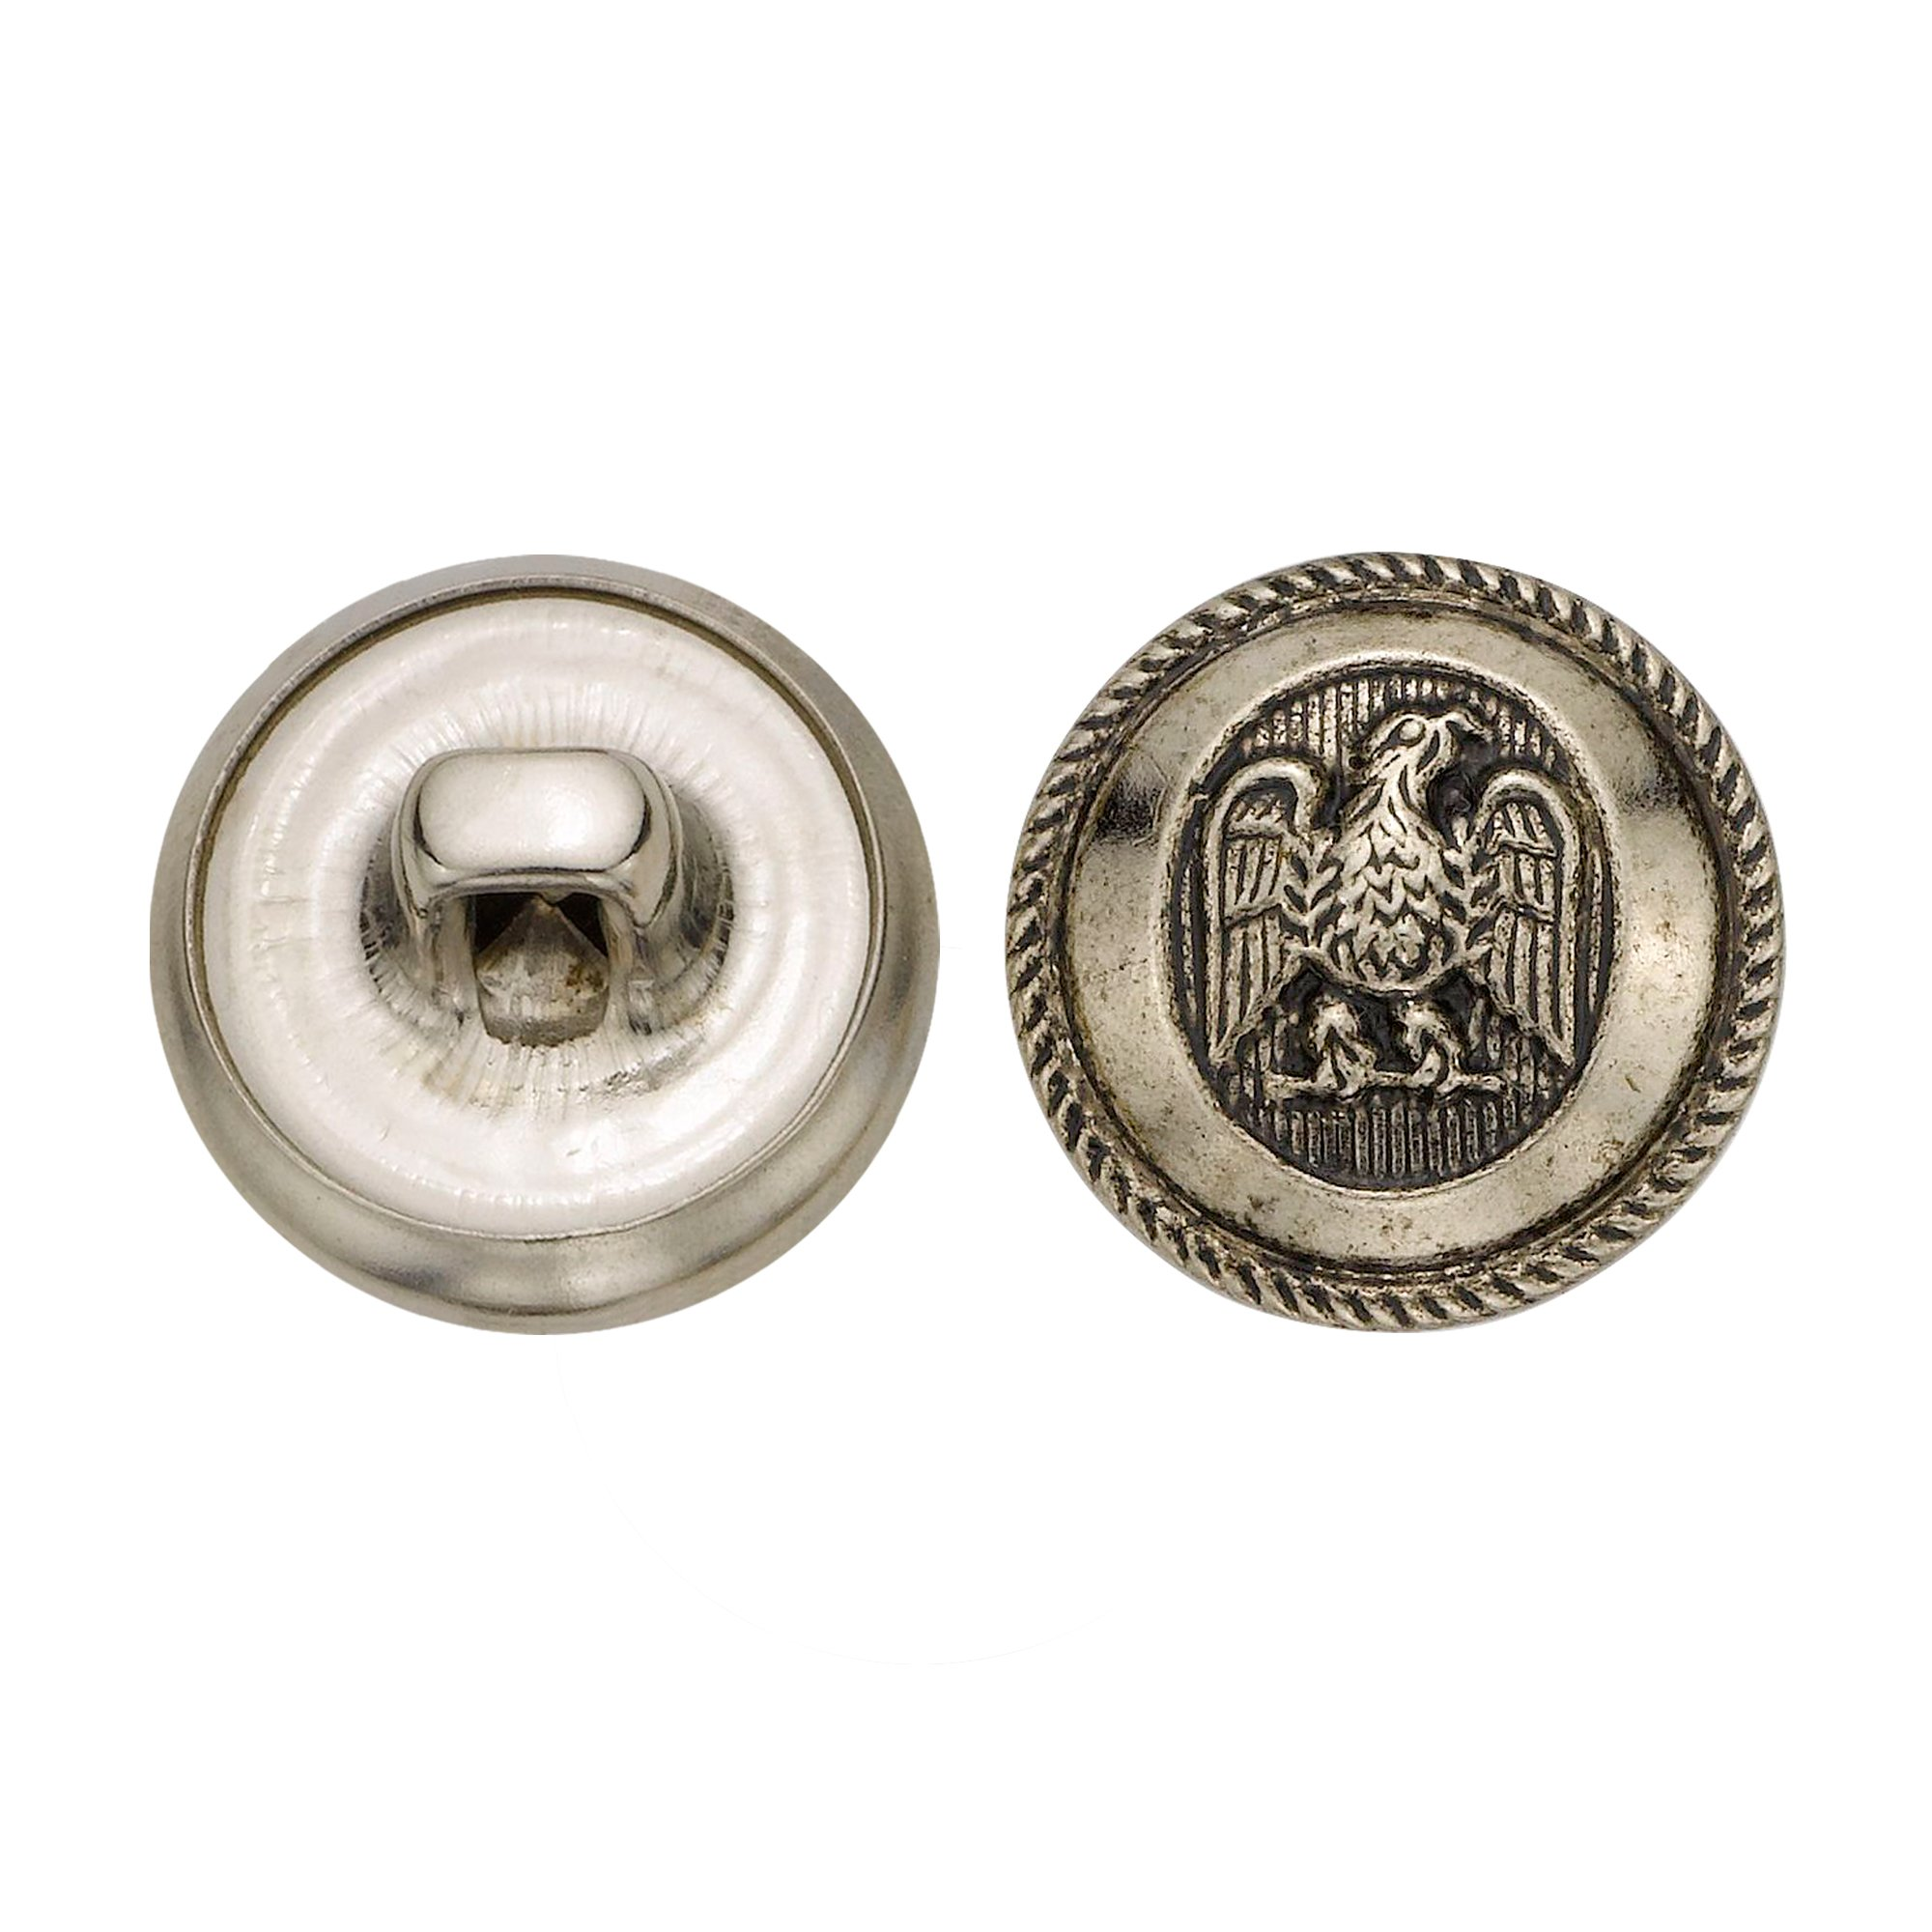 C&C Metal Products 5064 Rope Rim Usa Eagle Metal Button, Size 24 Ligne, Antique Nickel, 72-Pack